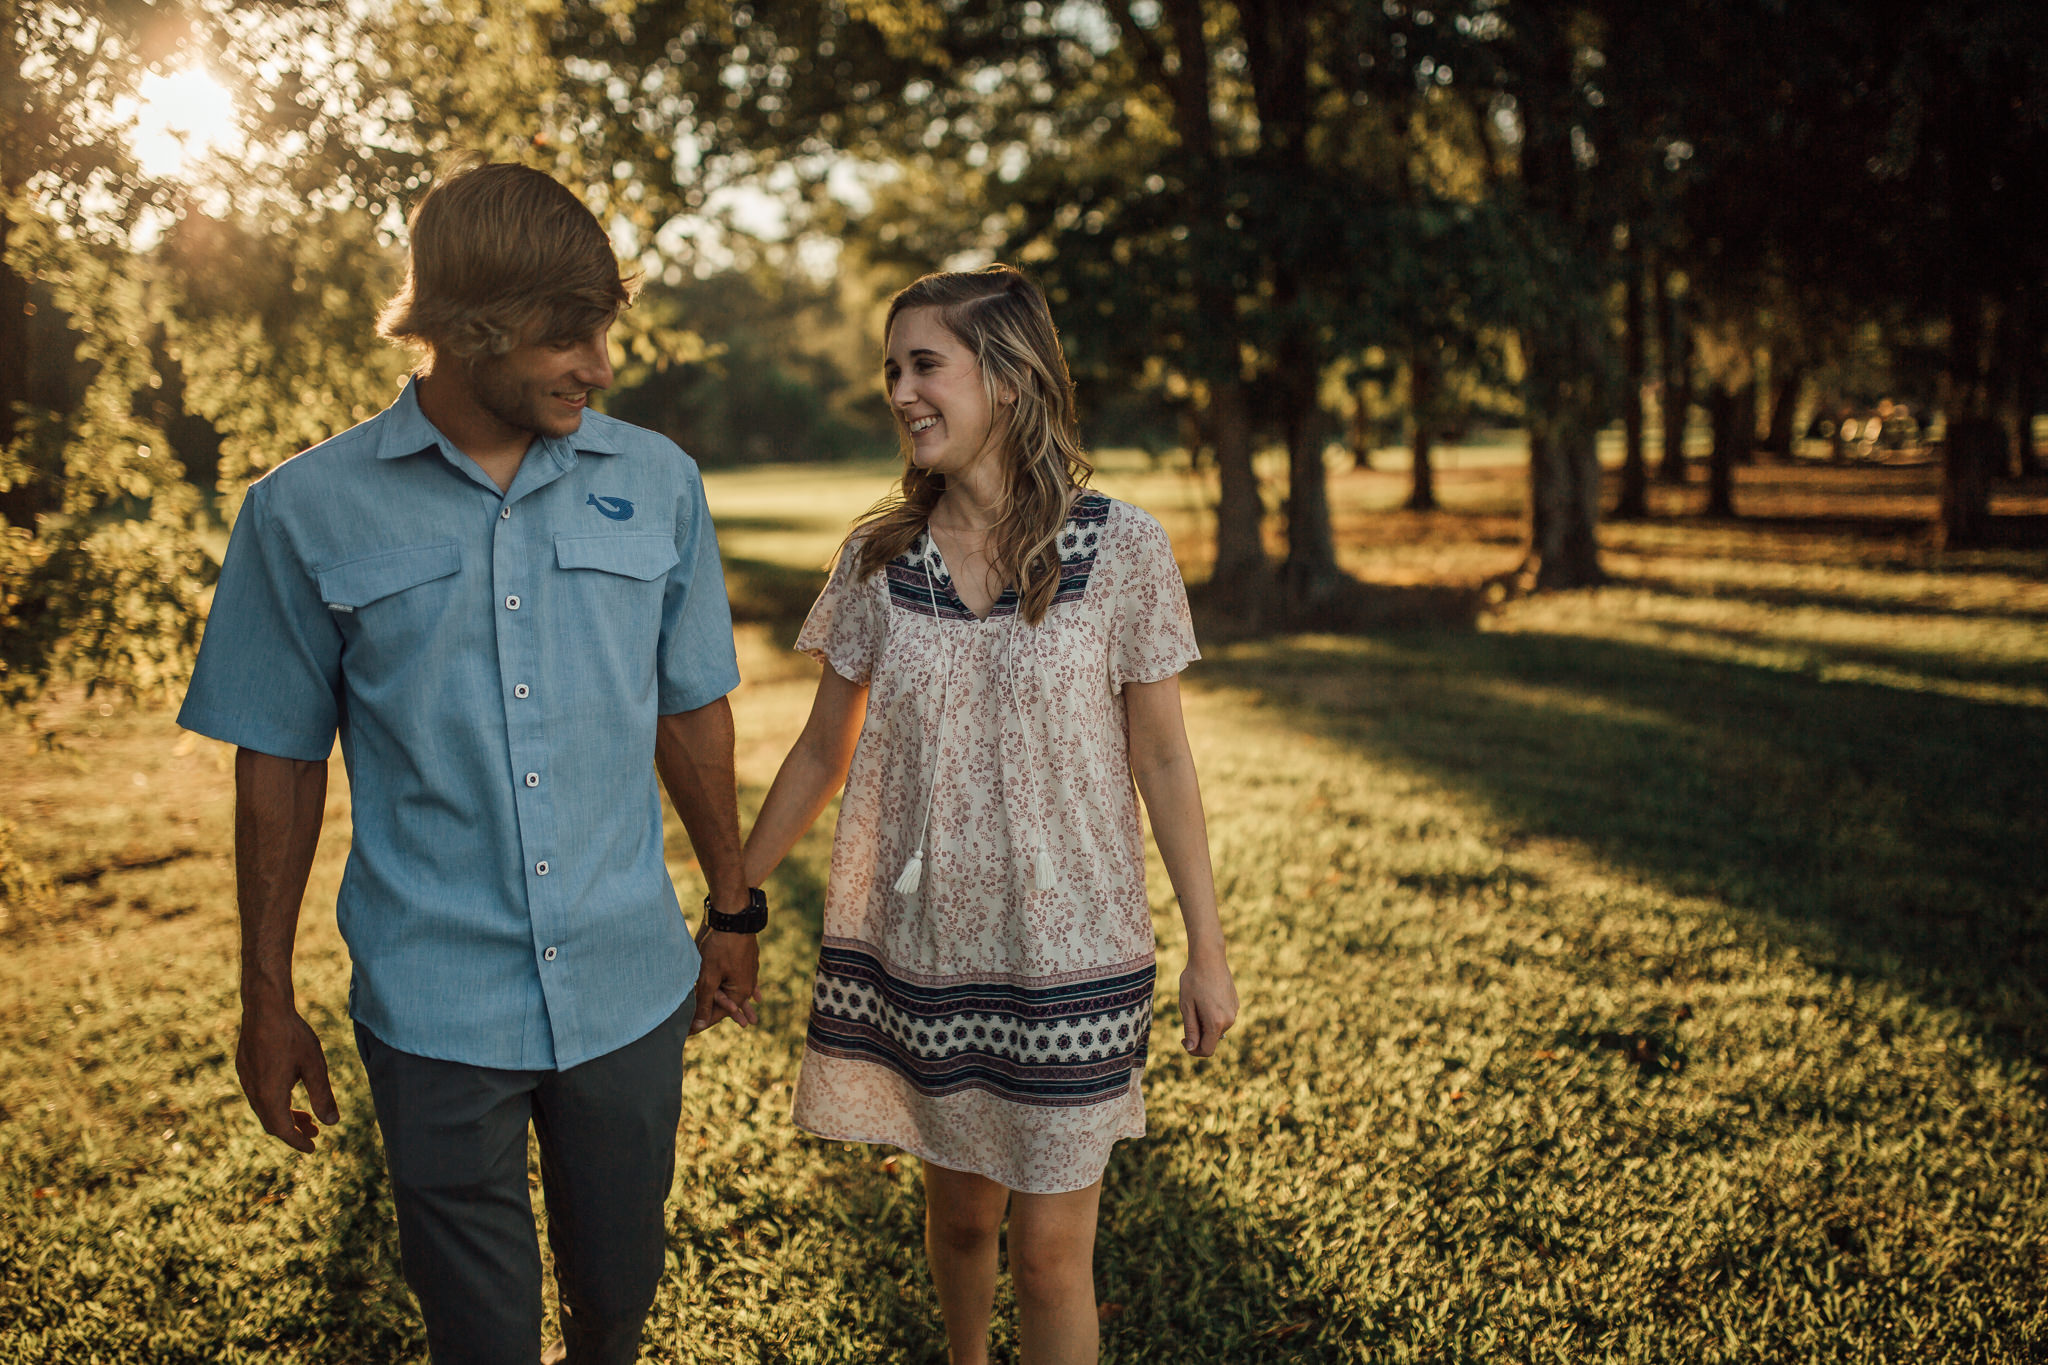 cassie-cook-photography-shelby-farms-engagment-pictures-memphis-wedding-photographer-527.jpg